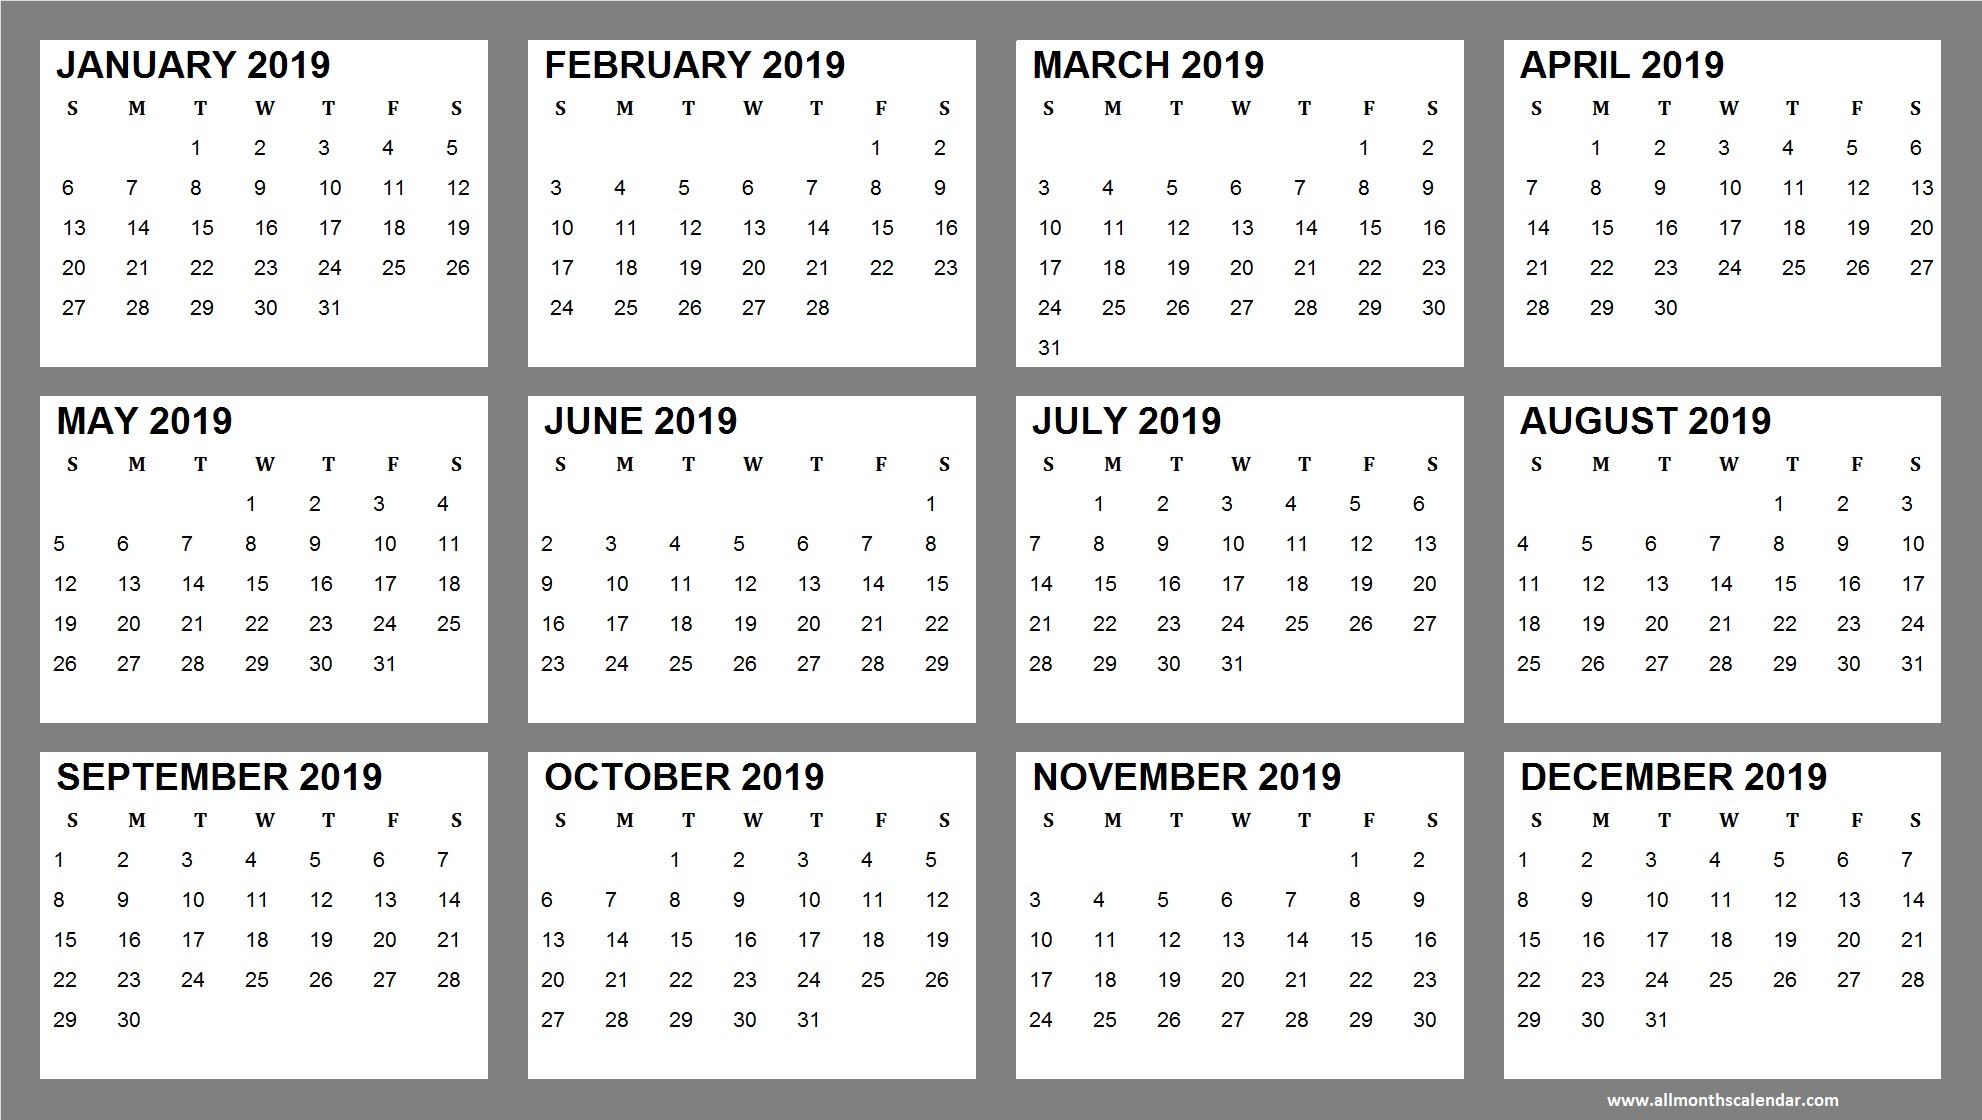 Yearly Calendar January 2019 To December 2019 Template | 12